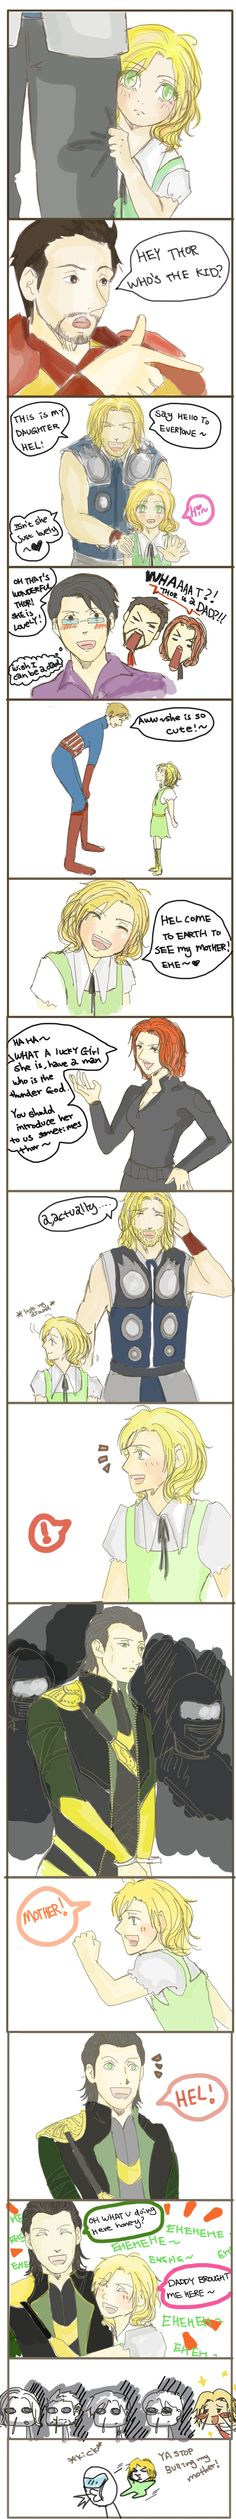 if thor n loki already have -- in the avengers... Hel doesn't look like this at all, but what a cute comic!<---- also Hel isn't Thor's daughter. She is the youngest child of Loki and Angrboda